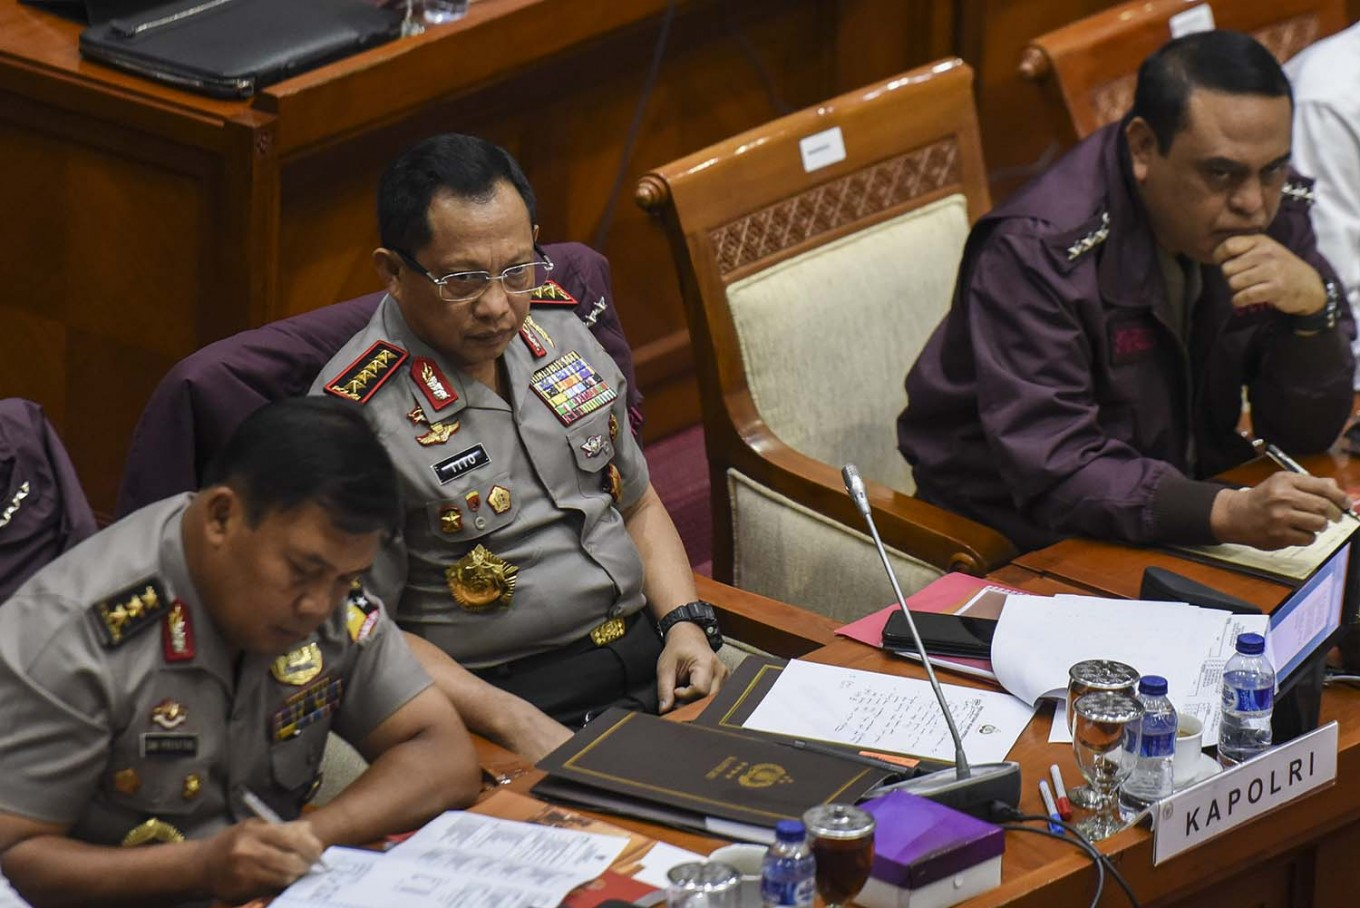 Police urged to standardize sex crime investigations to protect victims